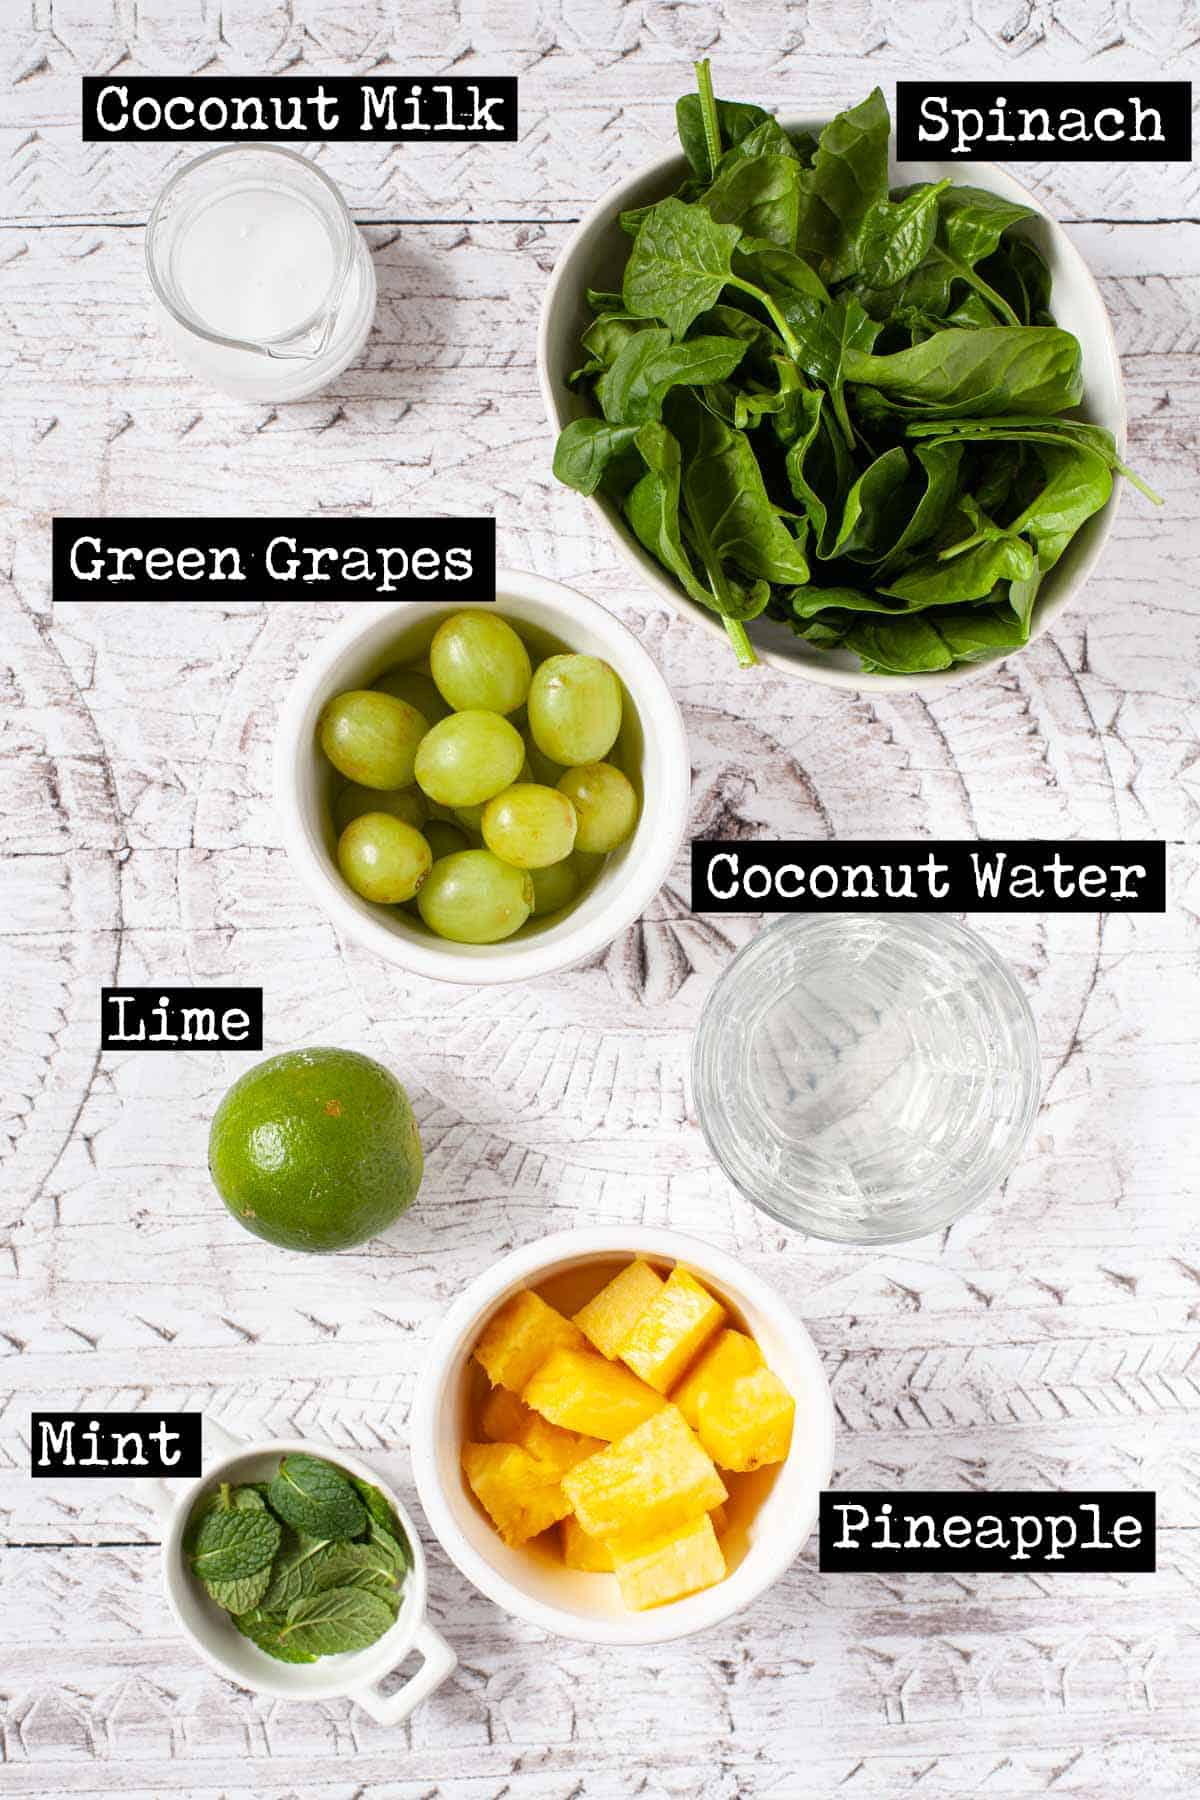 Labelled ingredients for a fruit and spinach drink